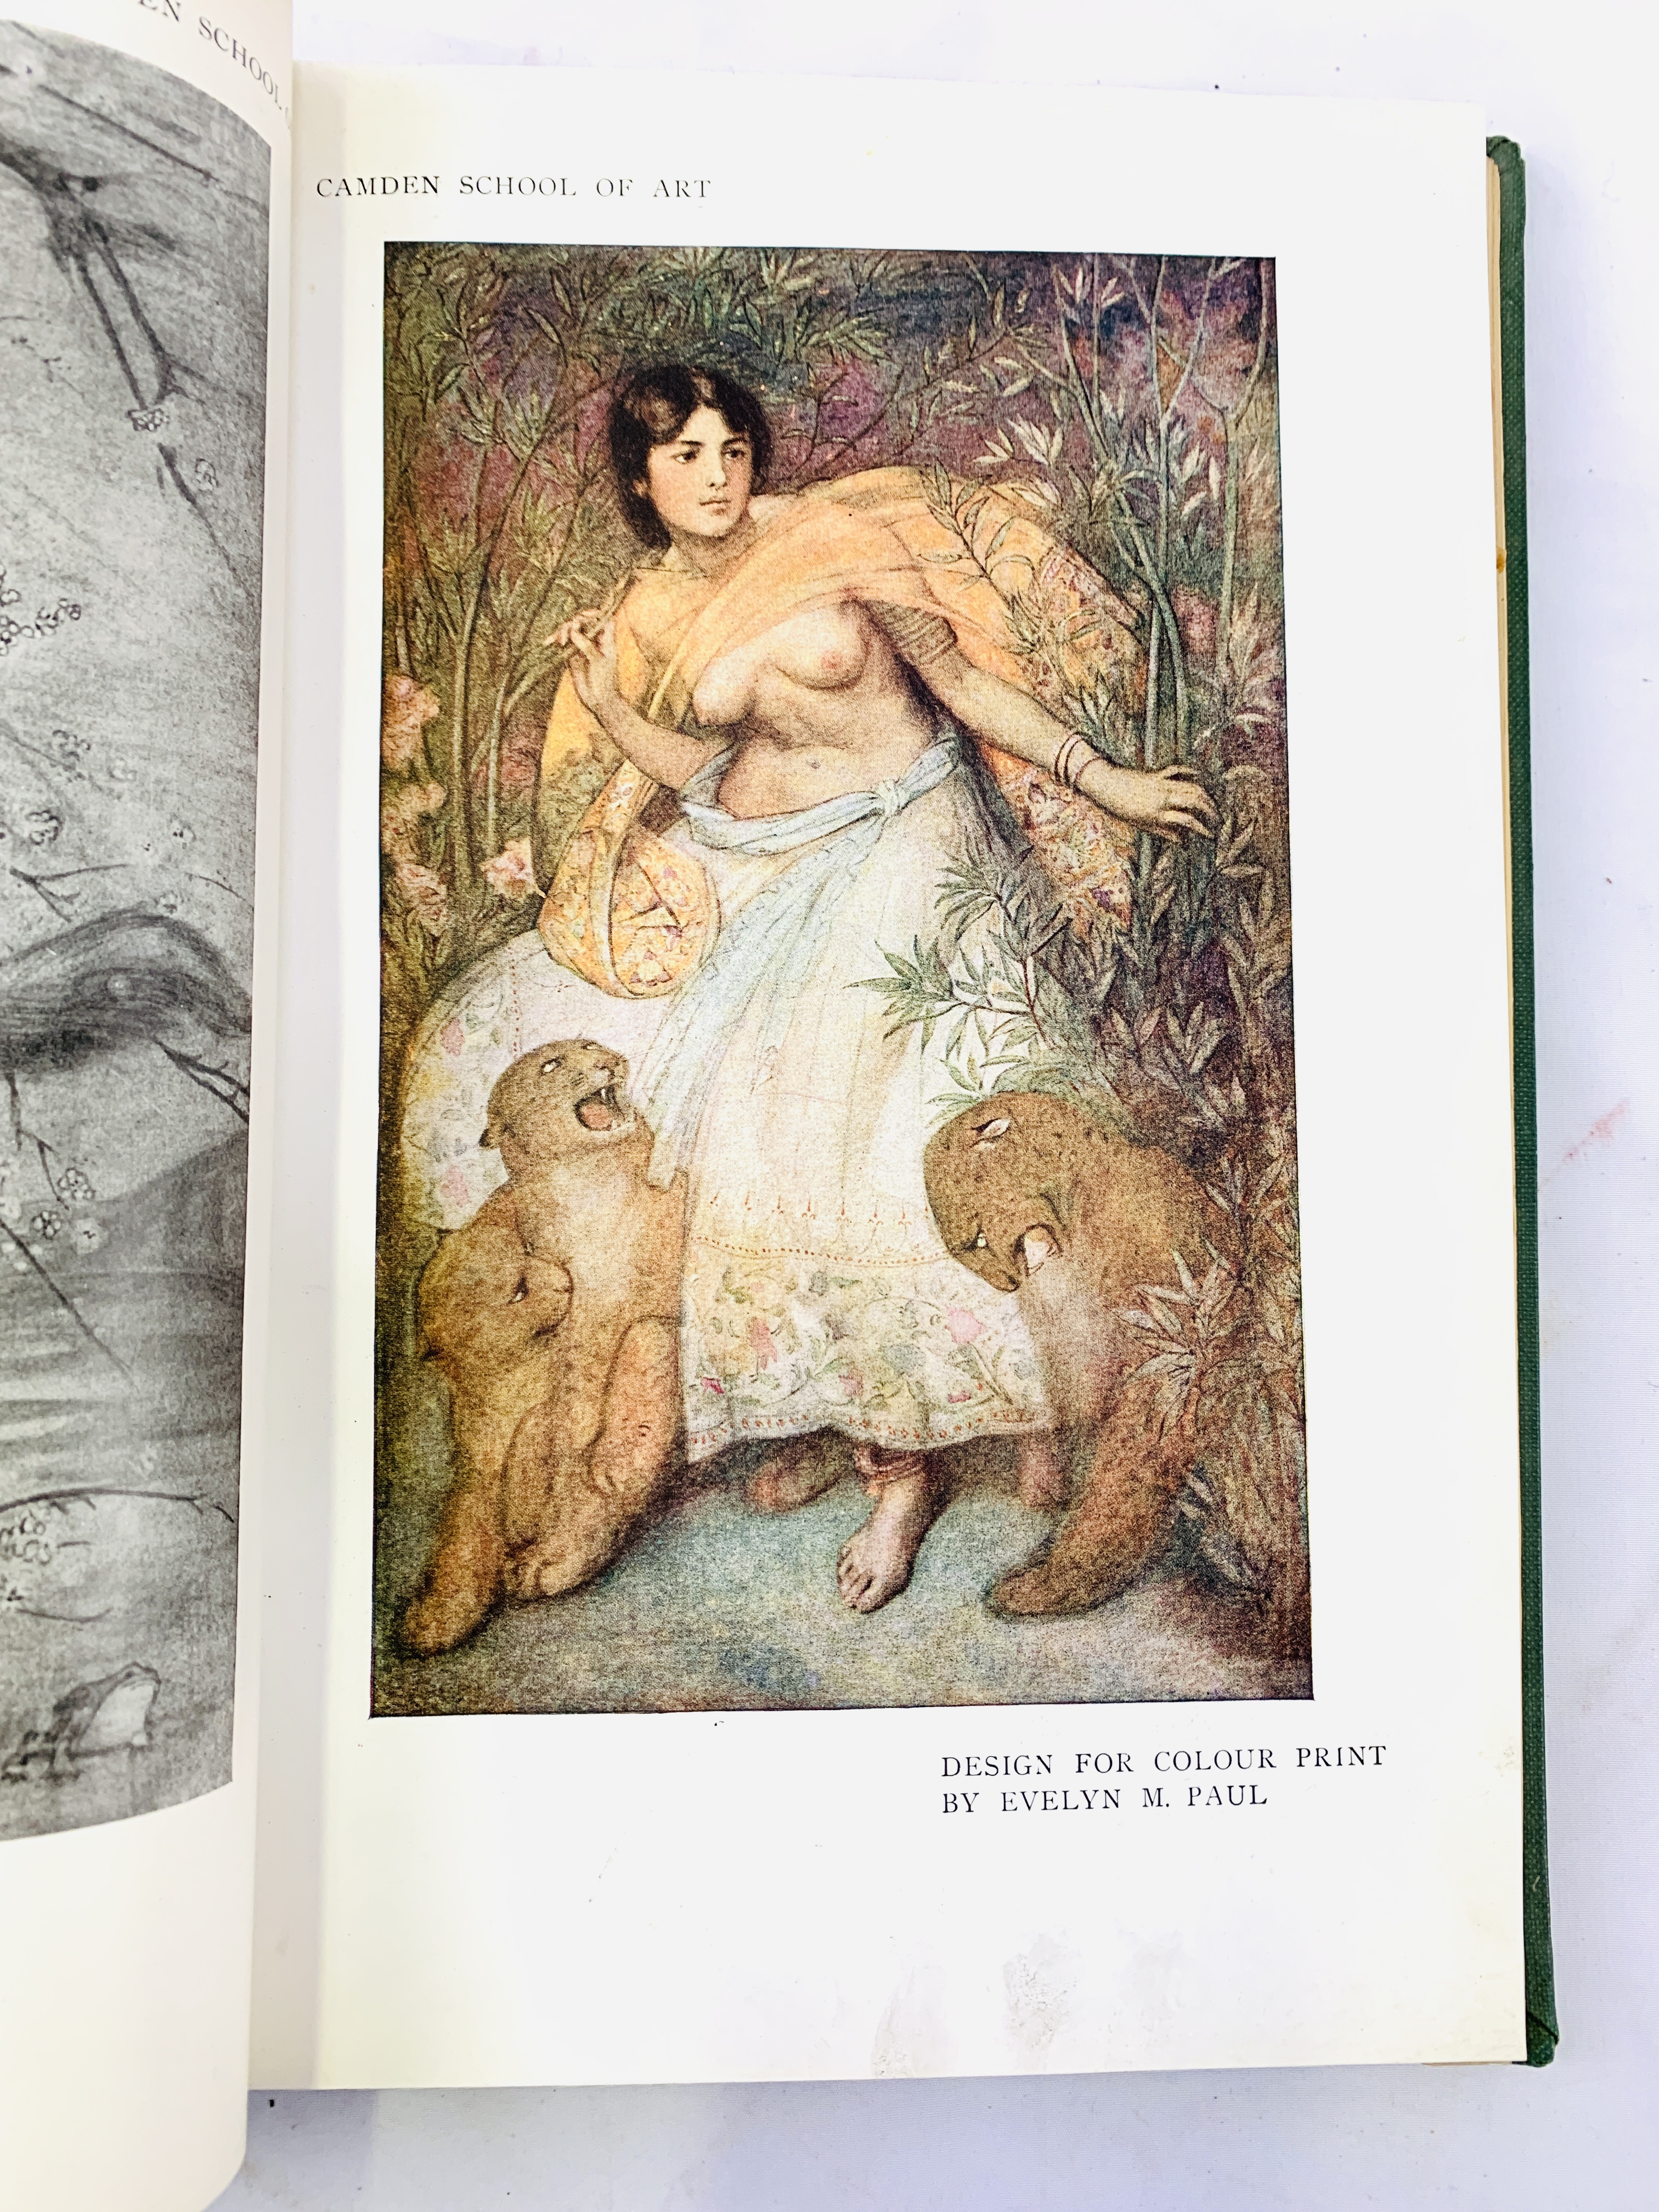 The Old Watercolour Society, 1804-1904, and Arts and Crafts, both edited by Charles Holme - Image 8 of 9